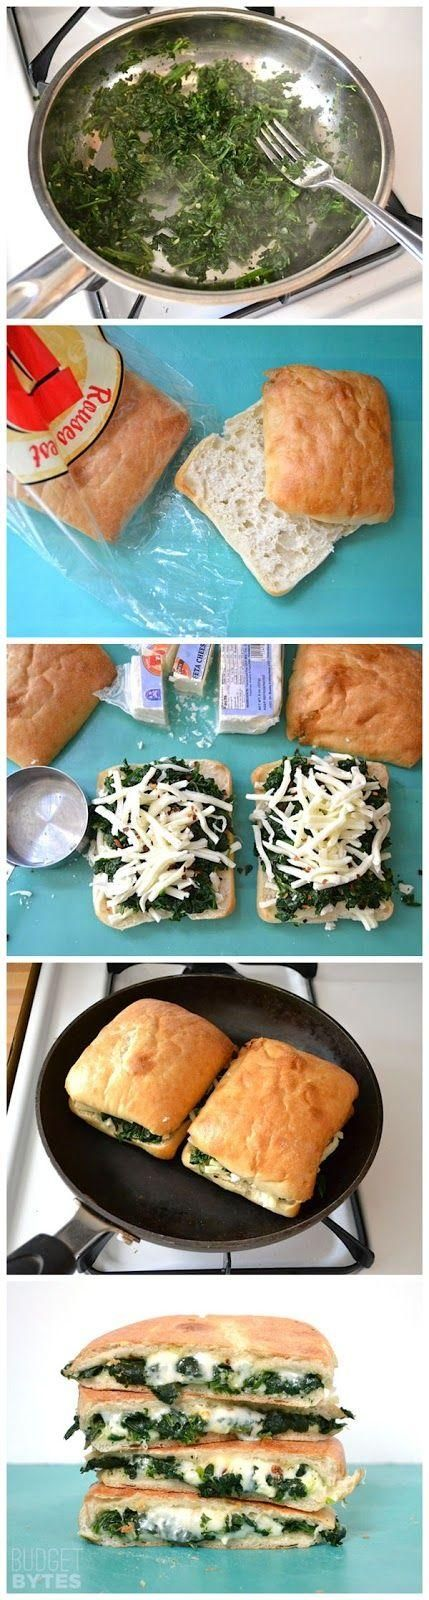 Spinach Feta Grilled Cheese - Love with recipe